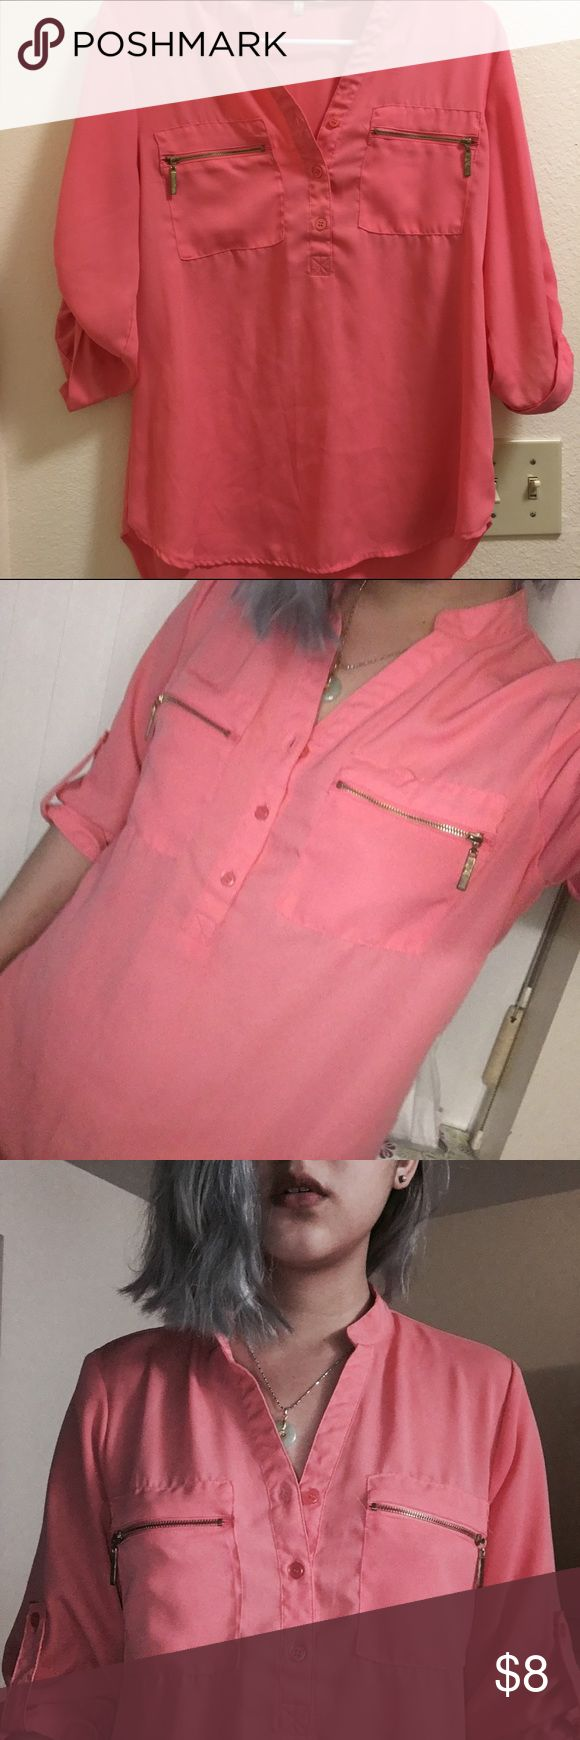 Sheer Peach Button Down 🍑peach tone button down shirt with zipper pickets 🍑 says size large but fits S/M 🍑no stains/weddings of wear or tear🍑make me a bundle offer!🍑I accept reasonable offers icy Tops Button Down Shirts